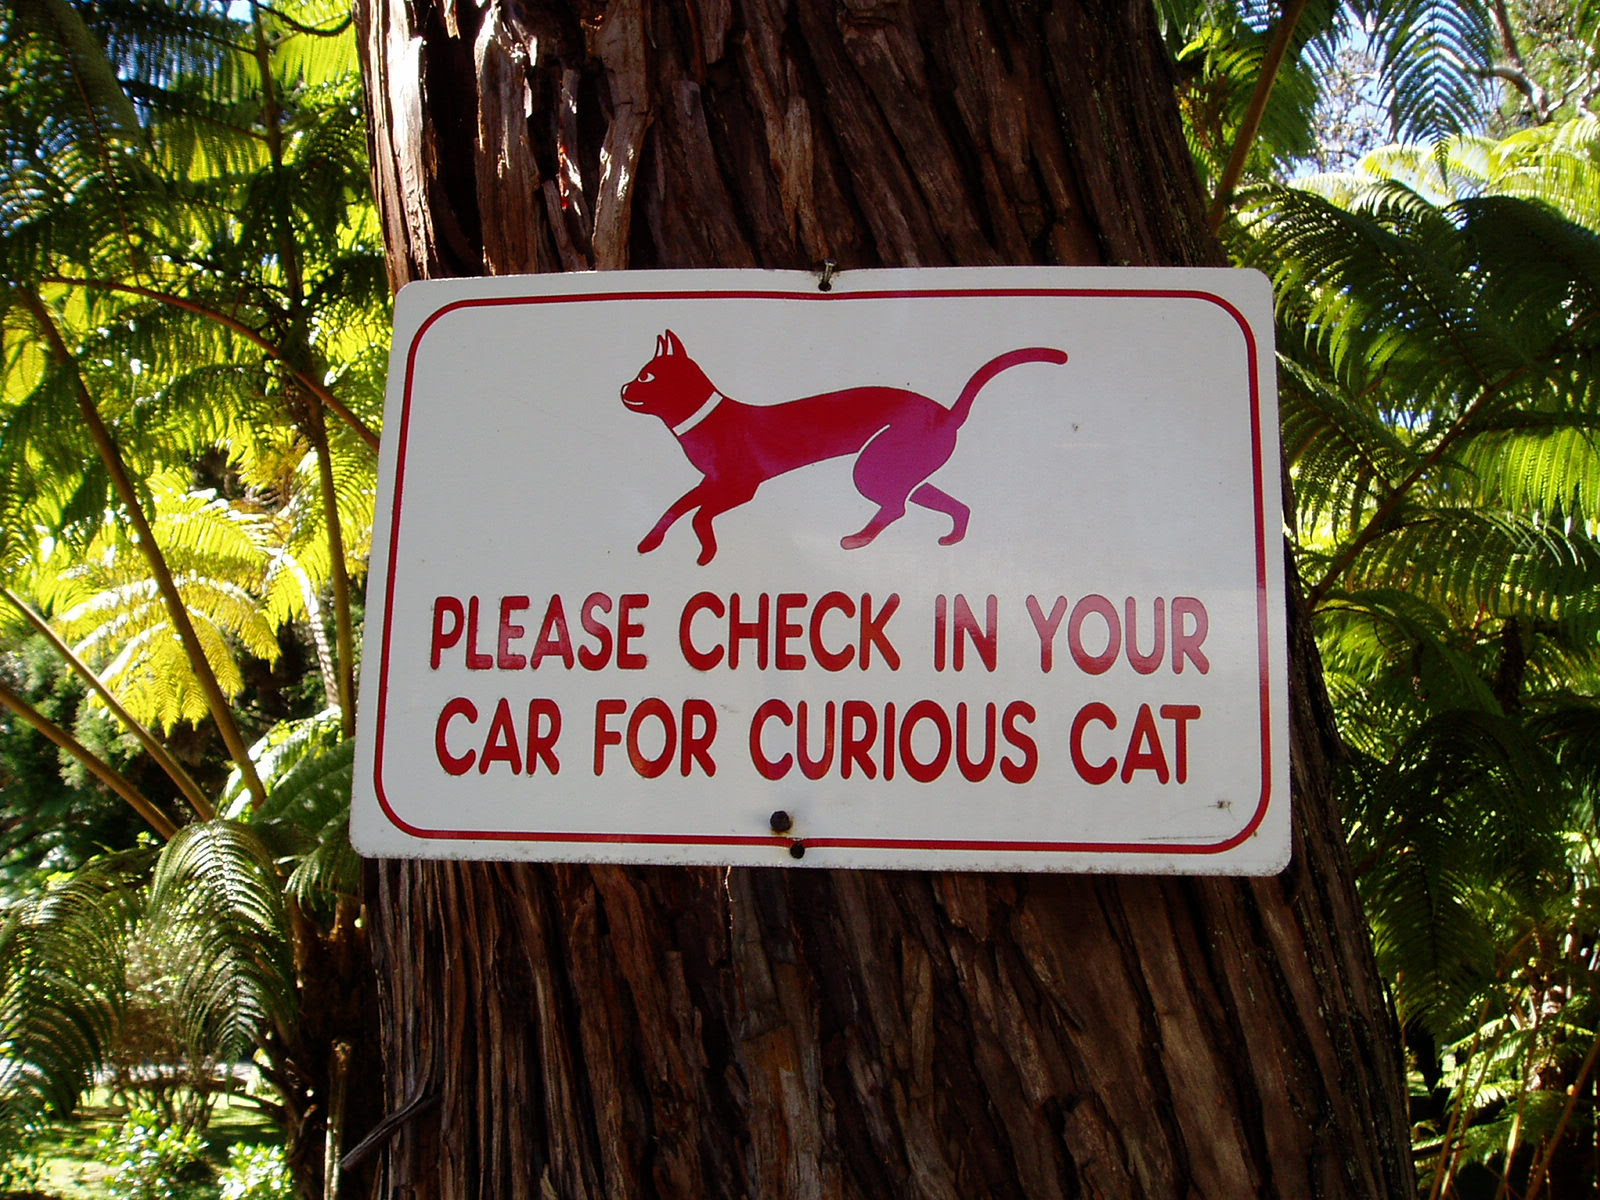 Please check in your car for curious cat